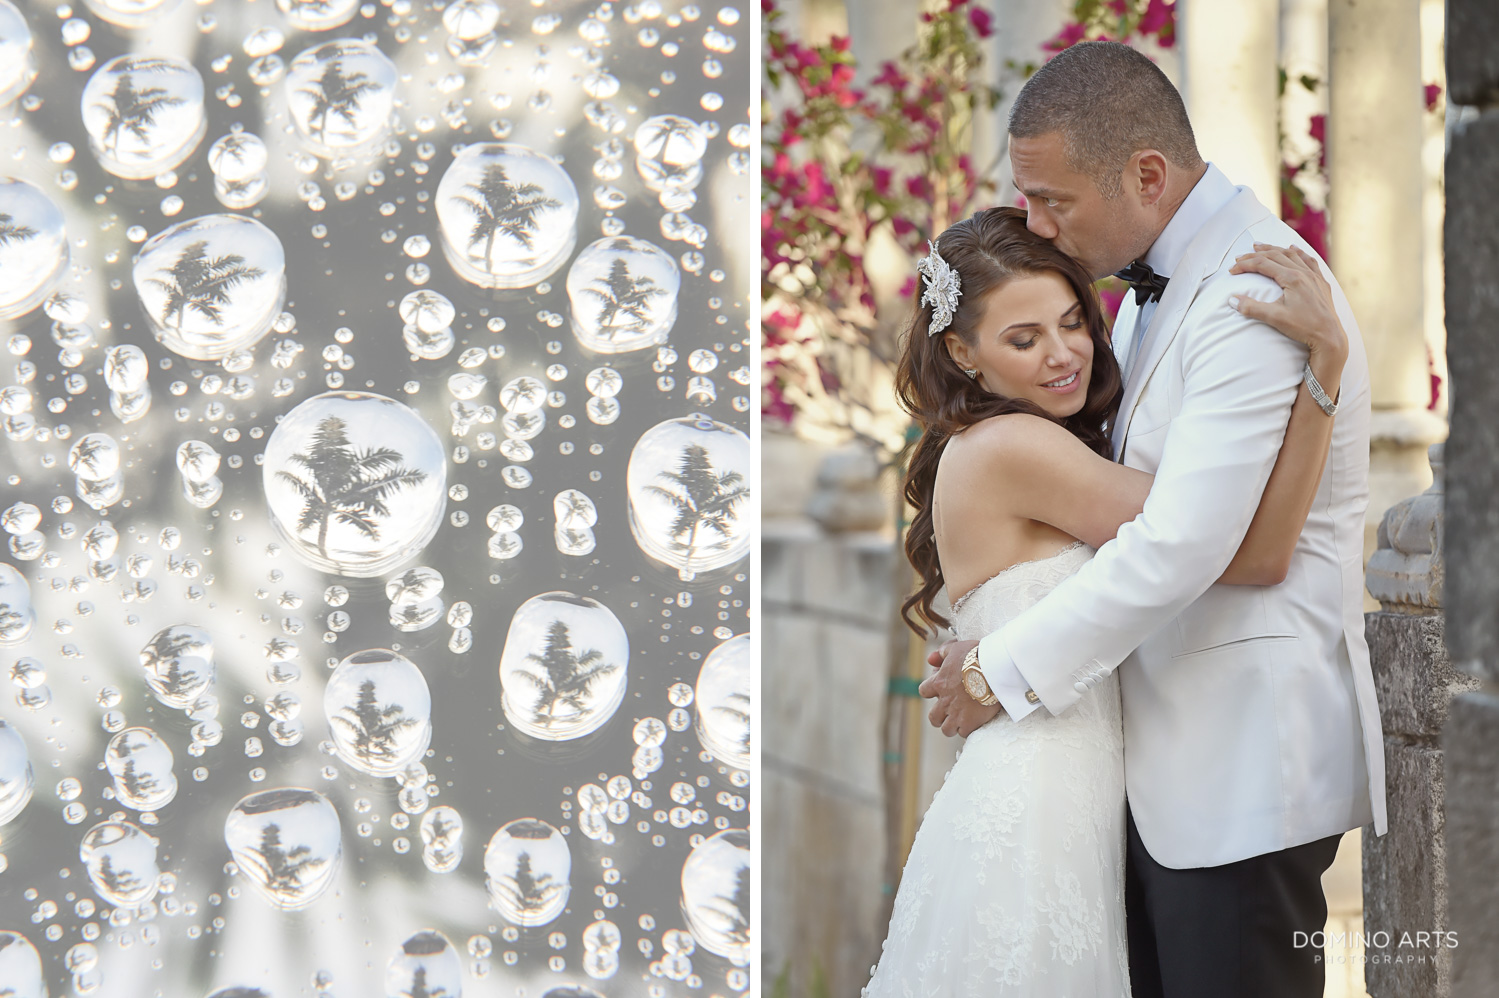 Artistic wedding picture of bride and groom at One&Only Ocean Club Bahamas